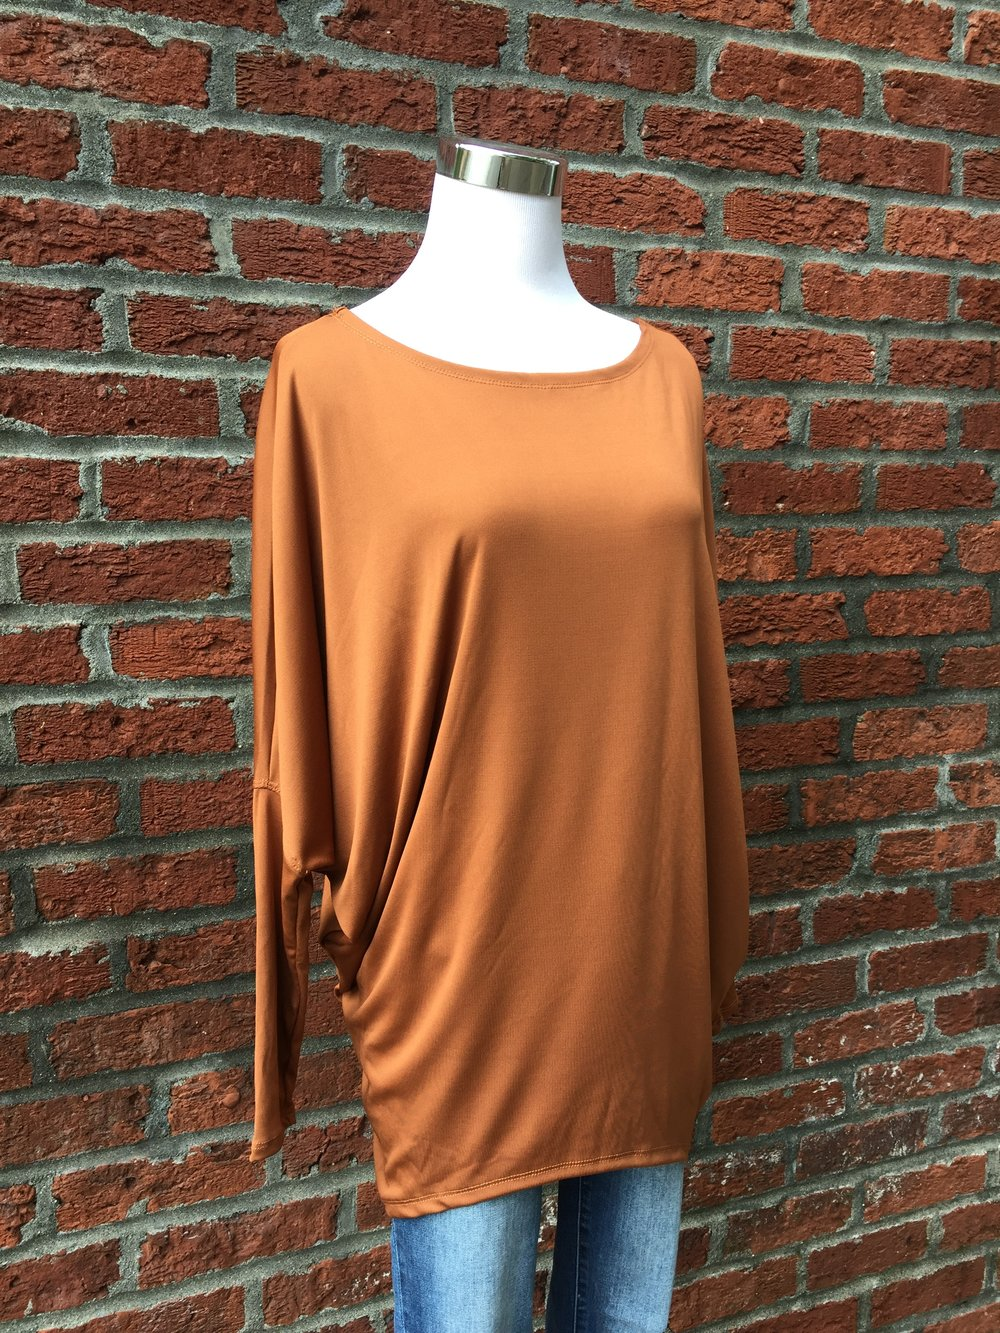 Burnt Orange Batwing Top